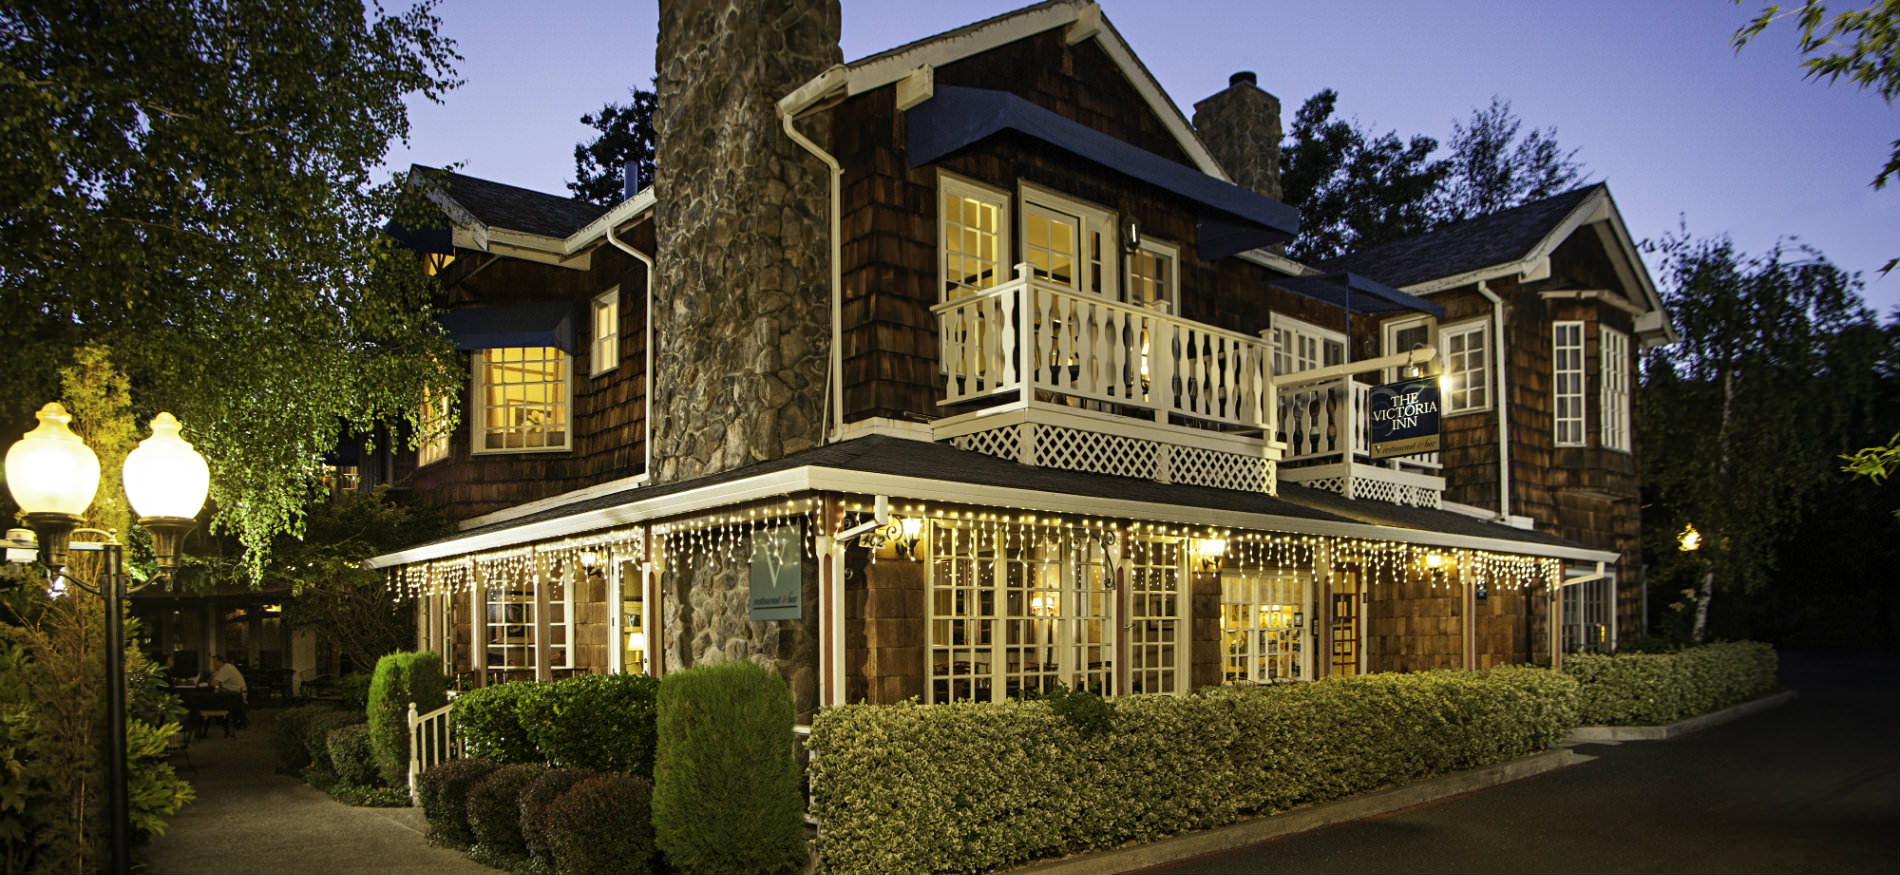 Victoria Inn exterior at dusk with warmly lit windows surrounded by lush green trees and manicured shrubs